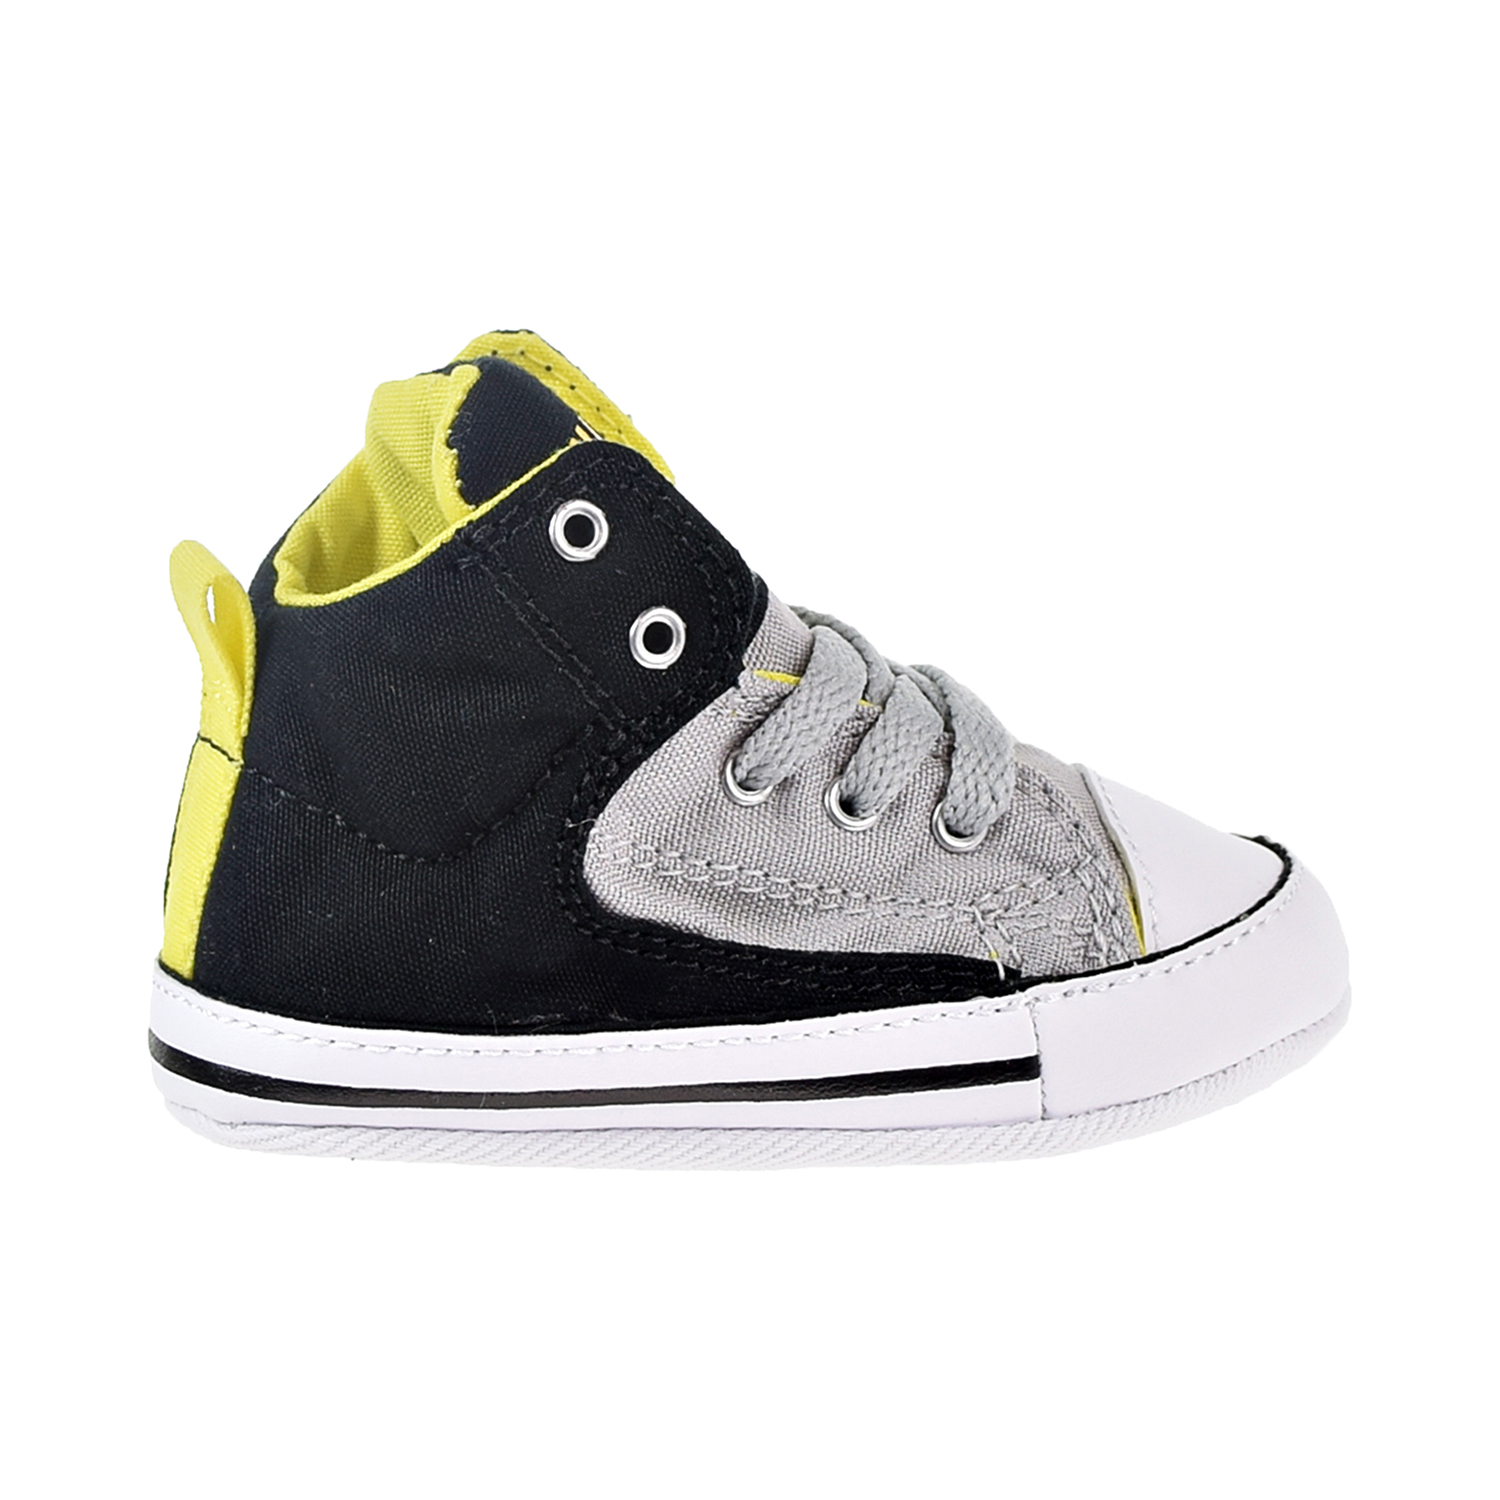 671f65581e27b5 Details about Converse Chuck Taylor All Star First Star Crib Shoes  Black Ash Grey 856129C